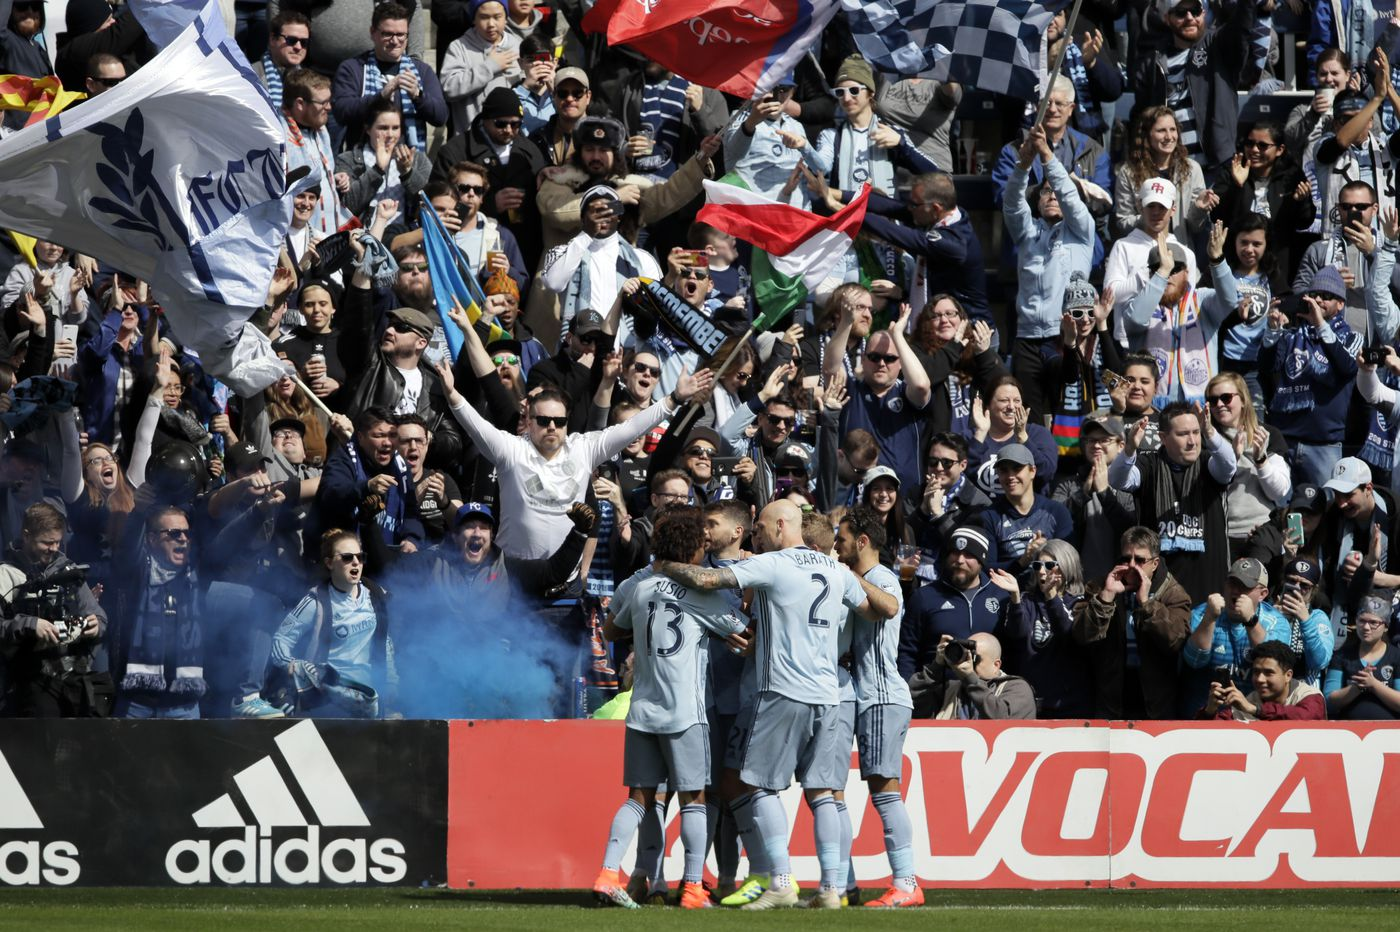 Union lose 2-0 at Sporting Kansas City, and lose Marco Fabián to red card